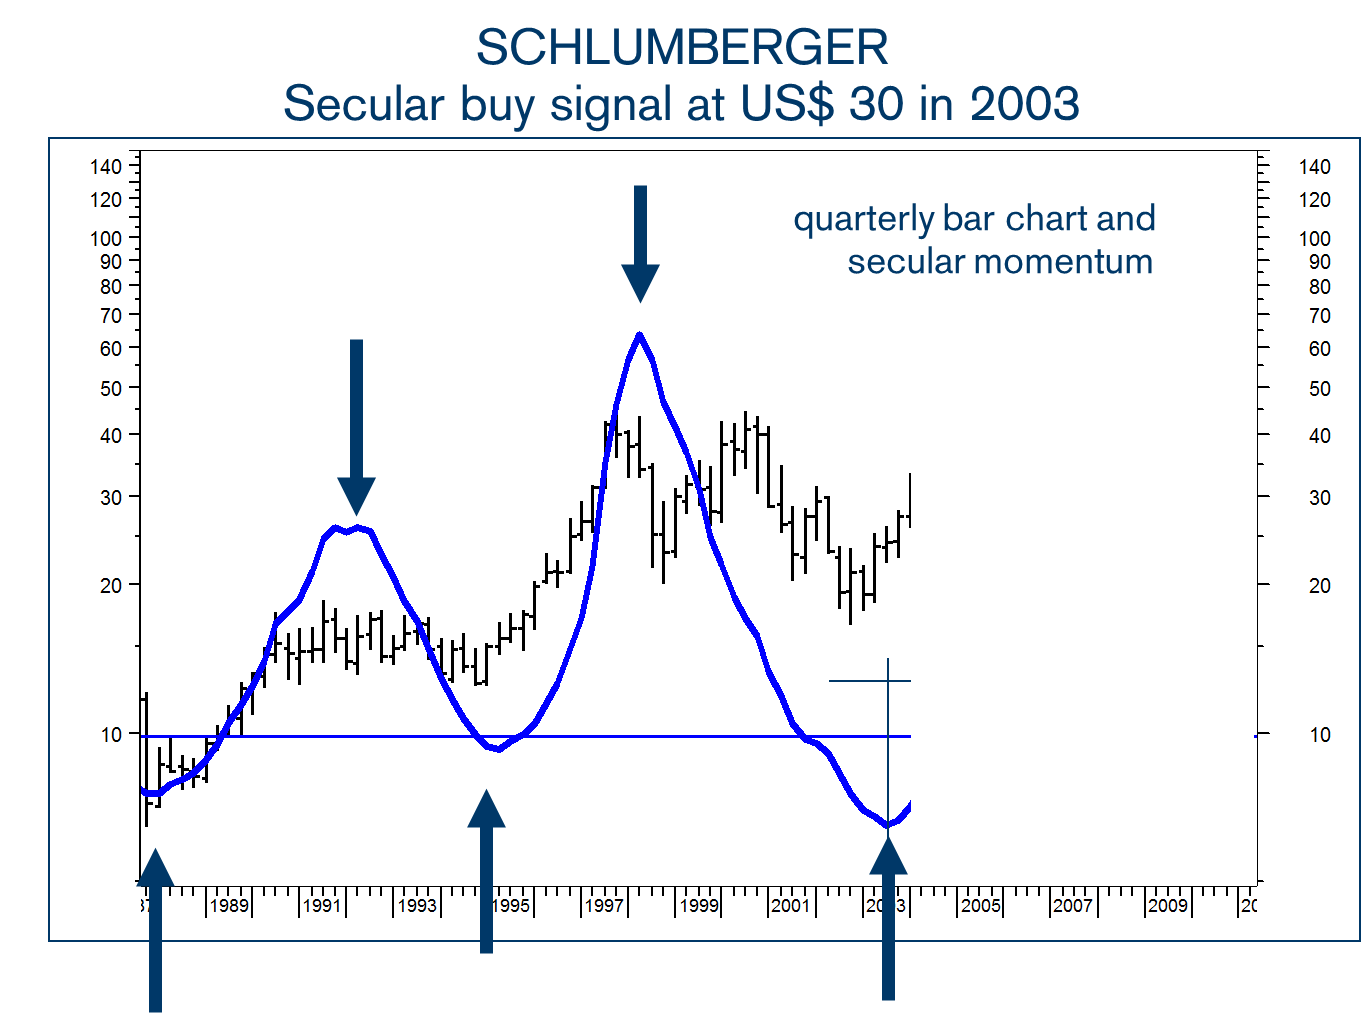 In  2003 , when  Schlumberge r traded around $30 I forecast a new secular uptrend based on the upturn in my Secular Momentum Indicator to persist for the coming years and to take SLB to new all-time highs.